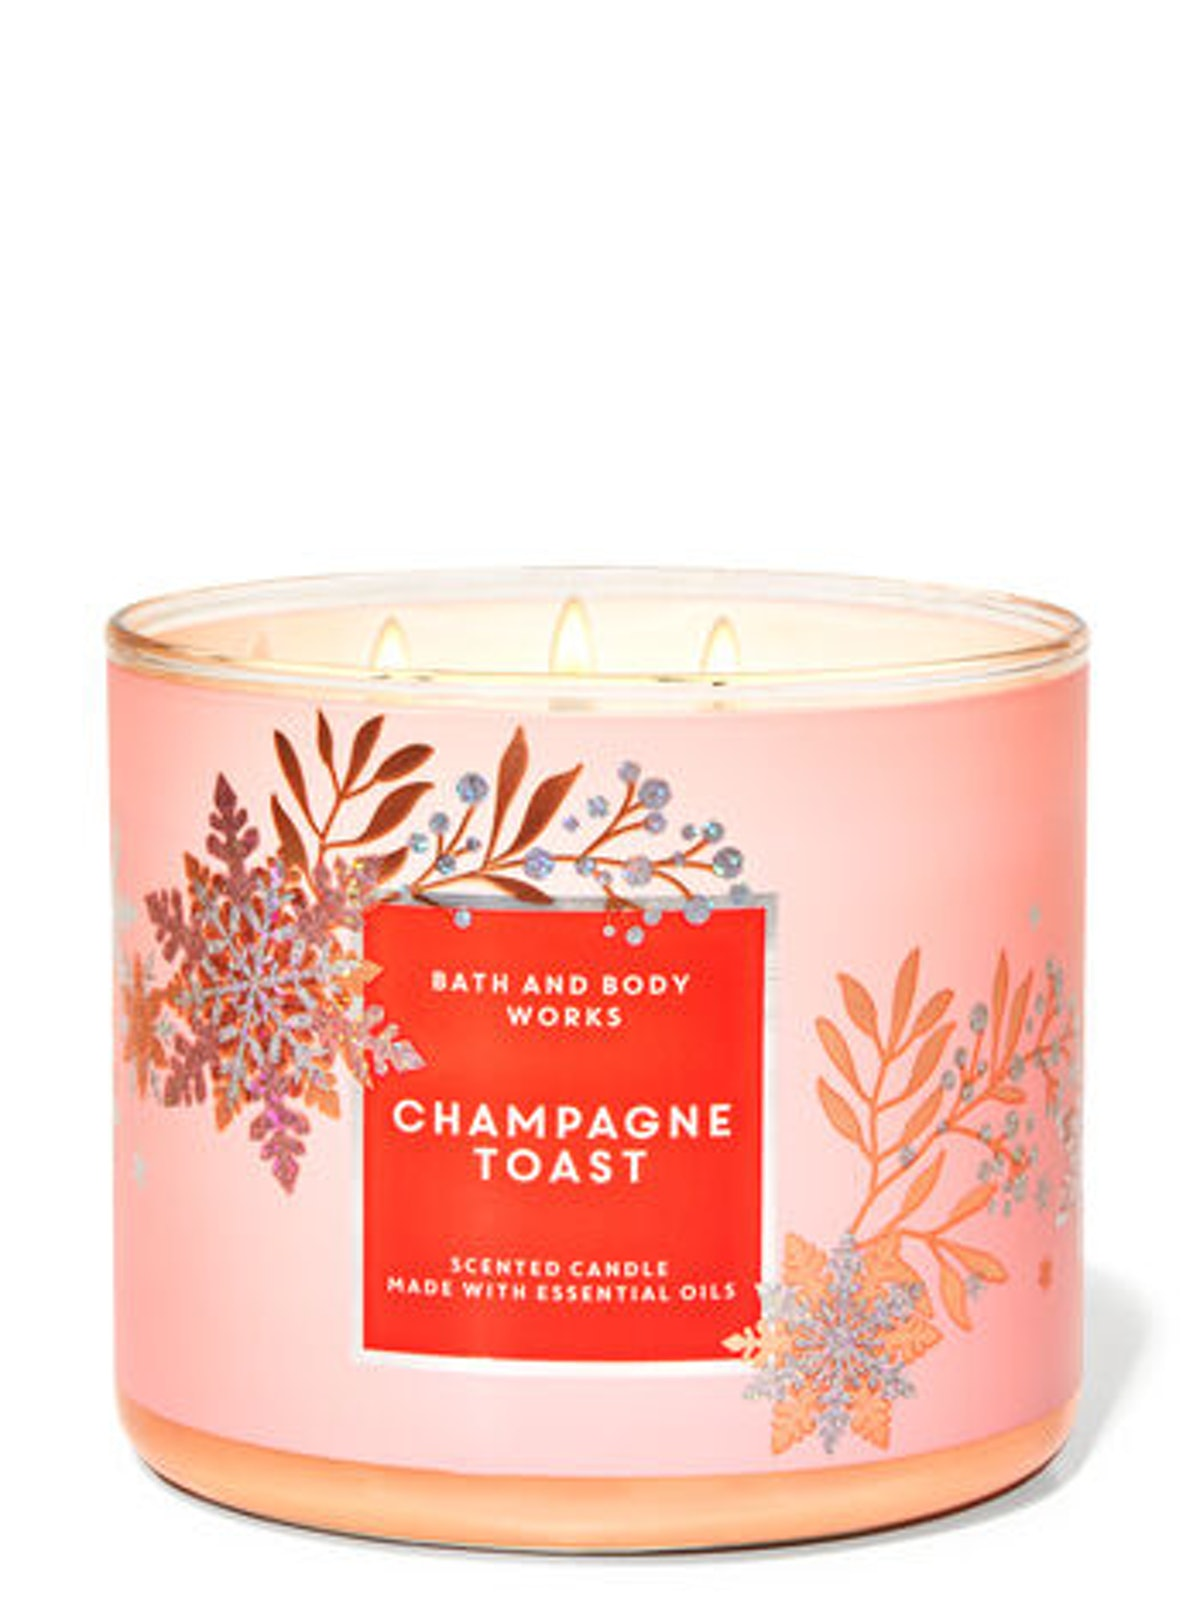 Champagne Toast Three-Wick Candle